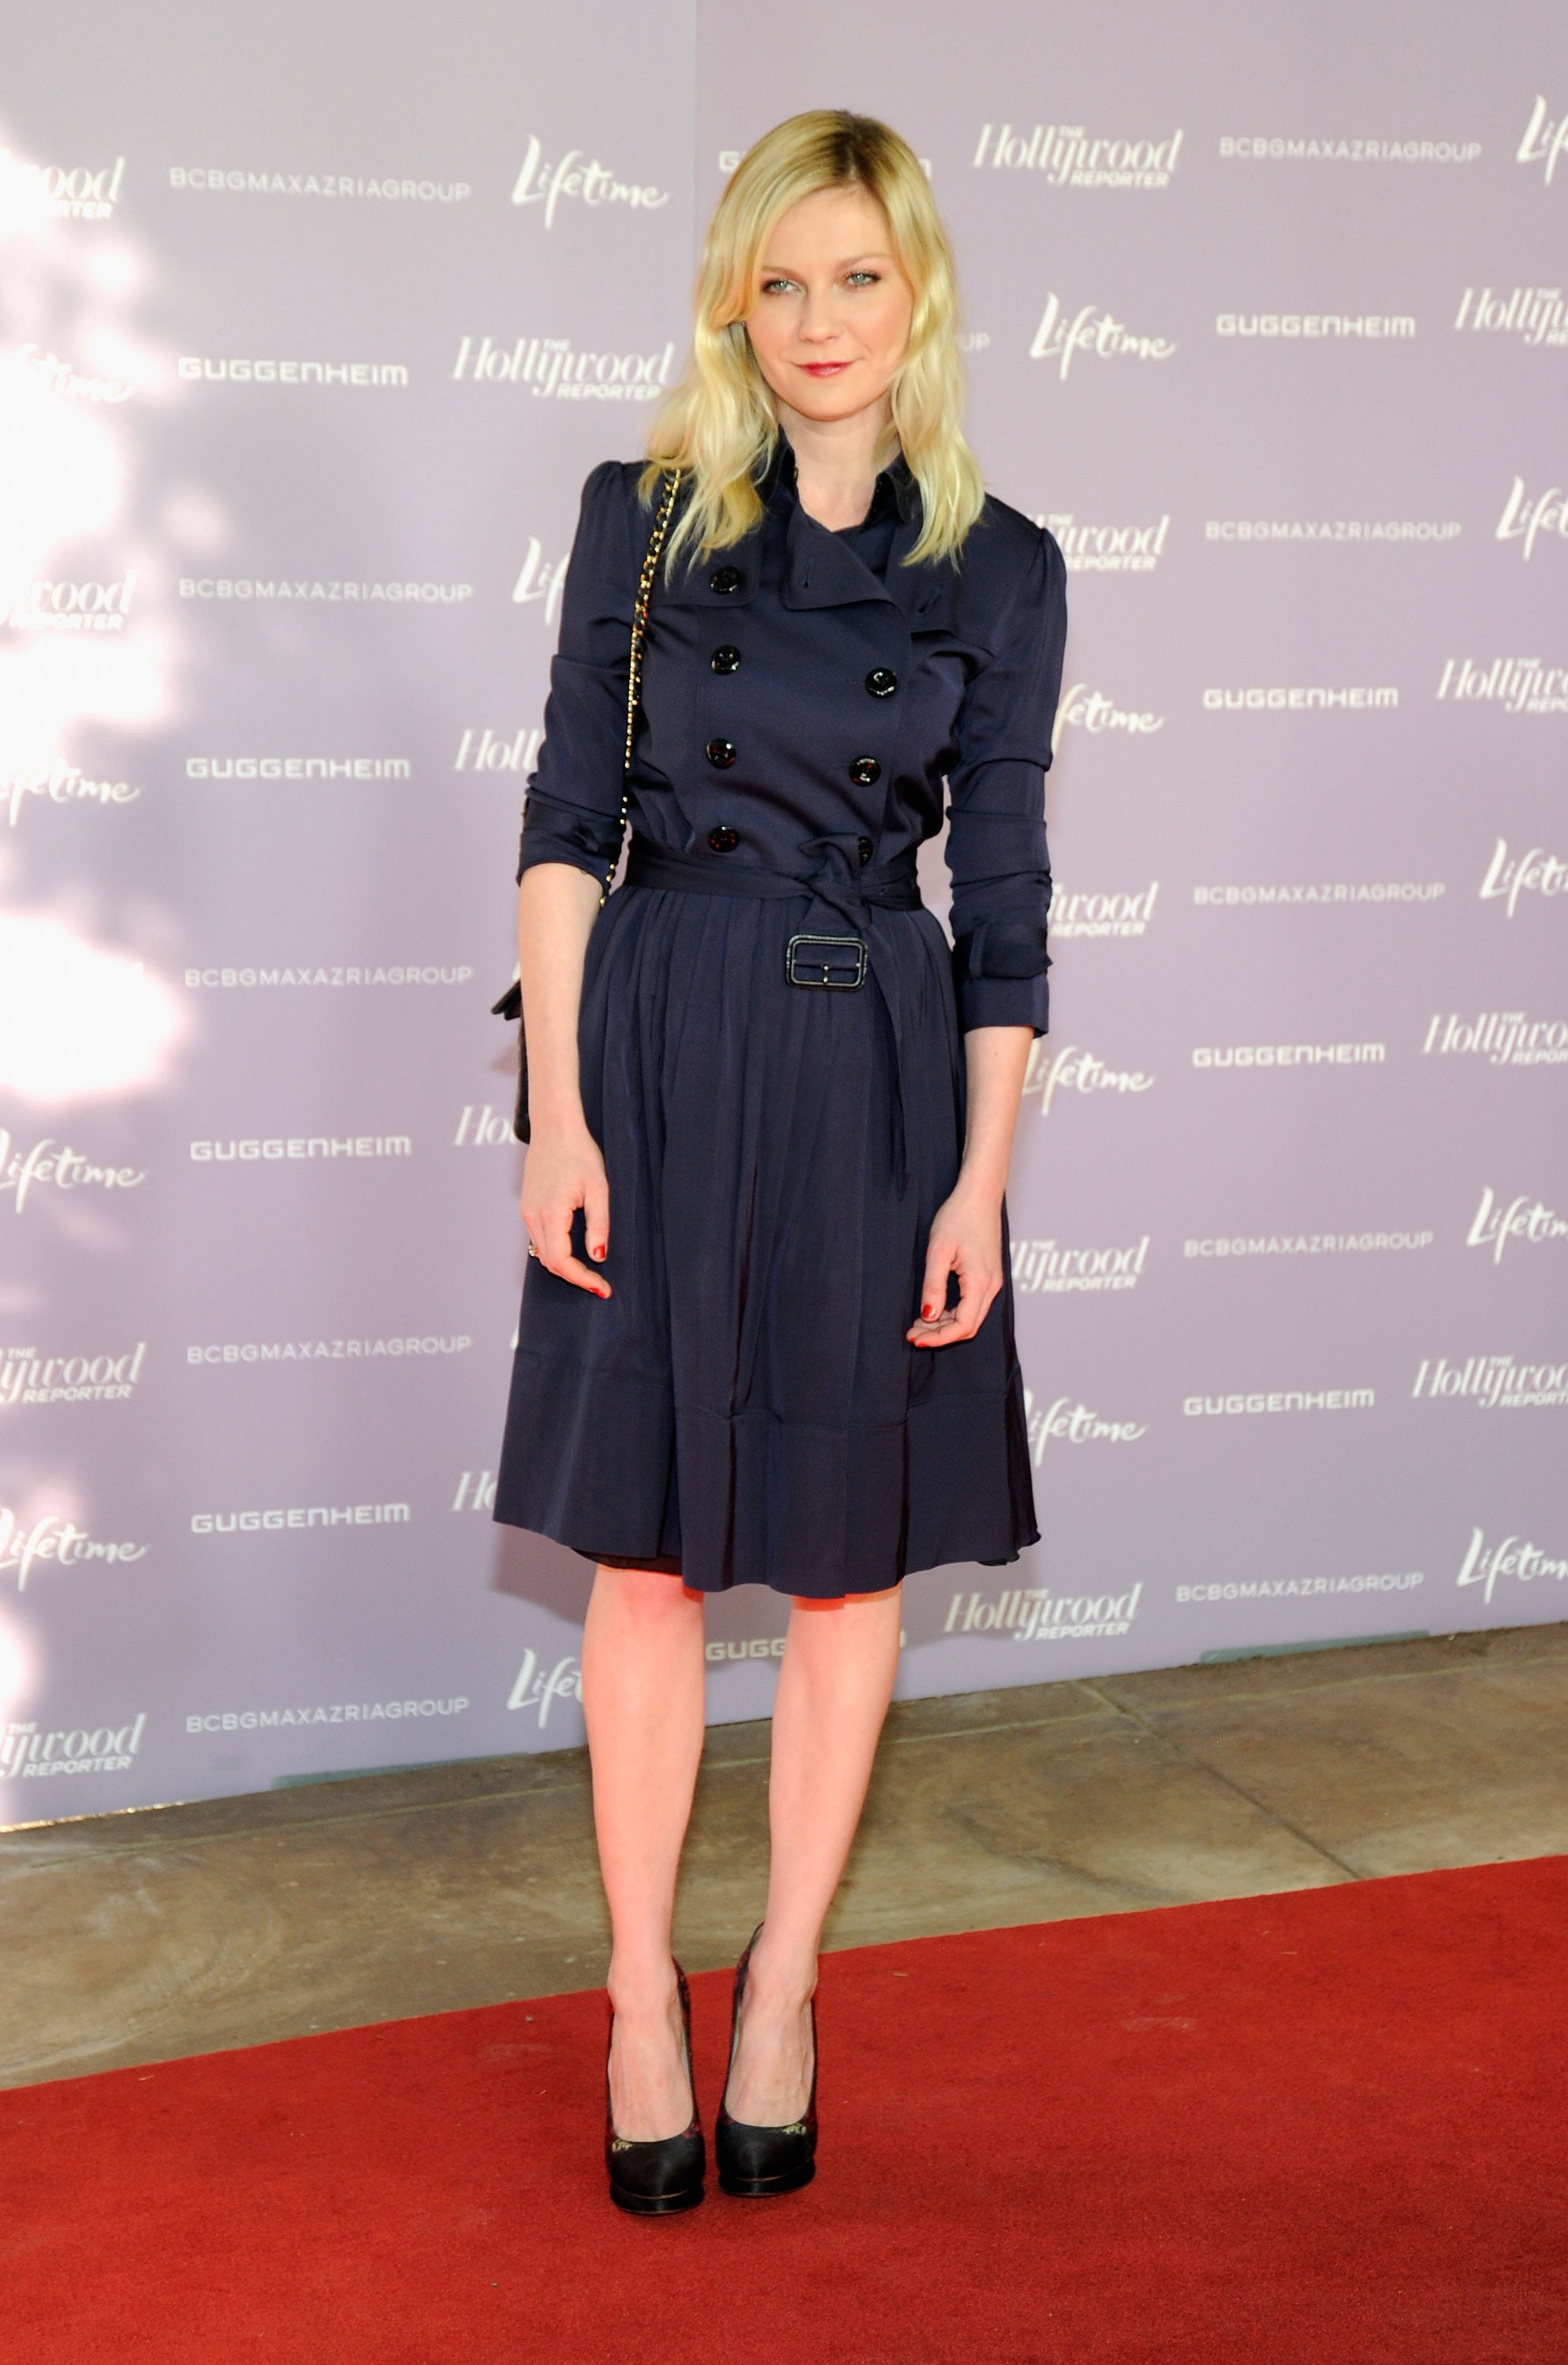 Kirsten Pulled Off The Belted Trench Cum Dress Look To Perfection At 31 Eclectic Ensembles